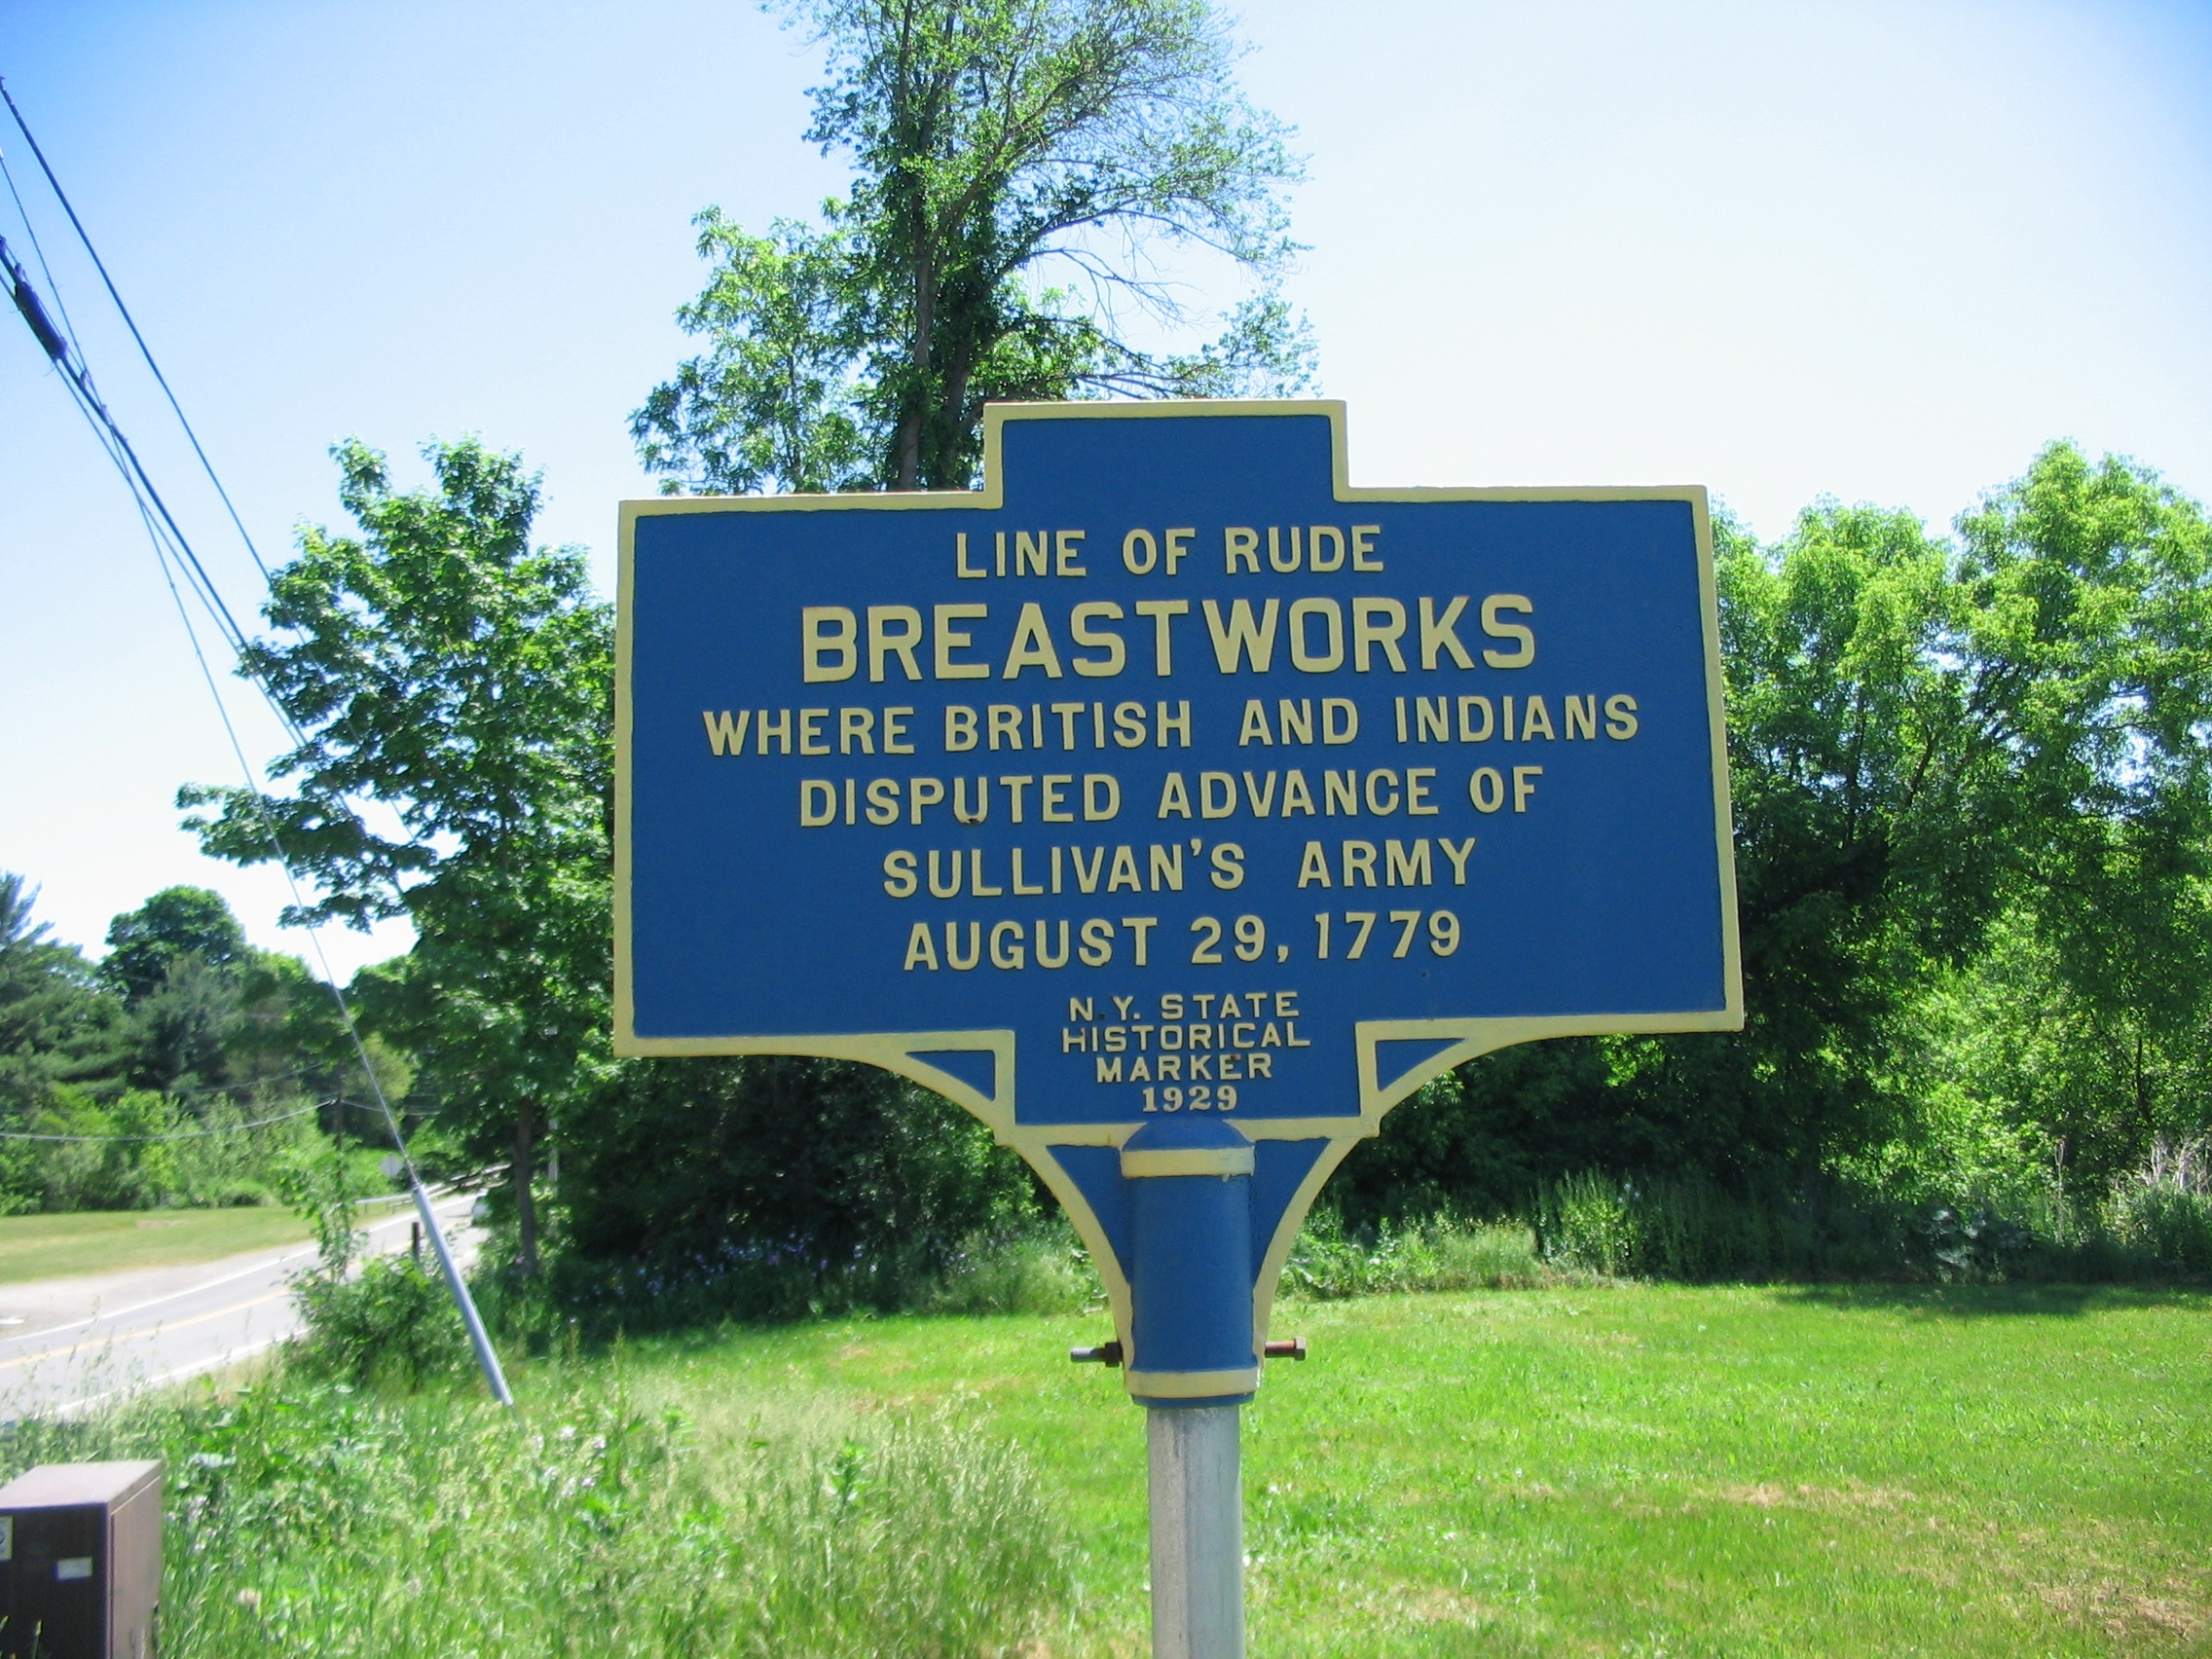 Line of Rude Breastworks Marker